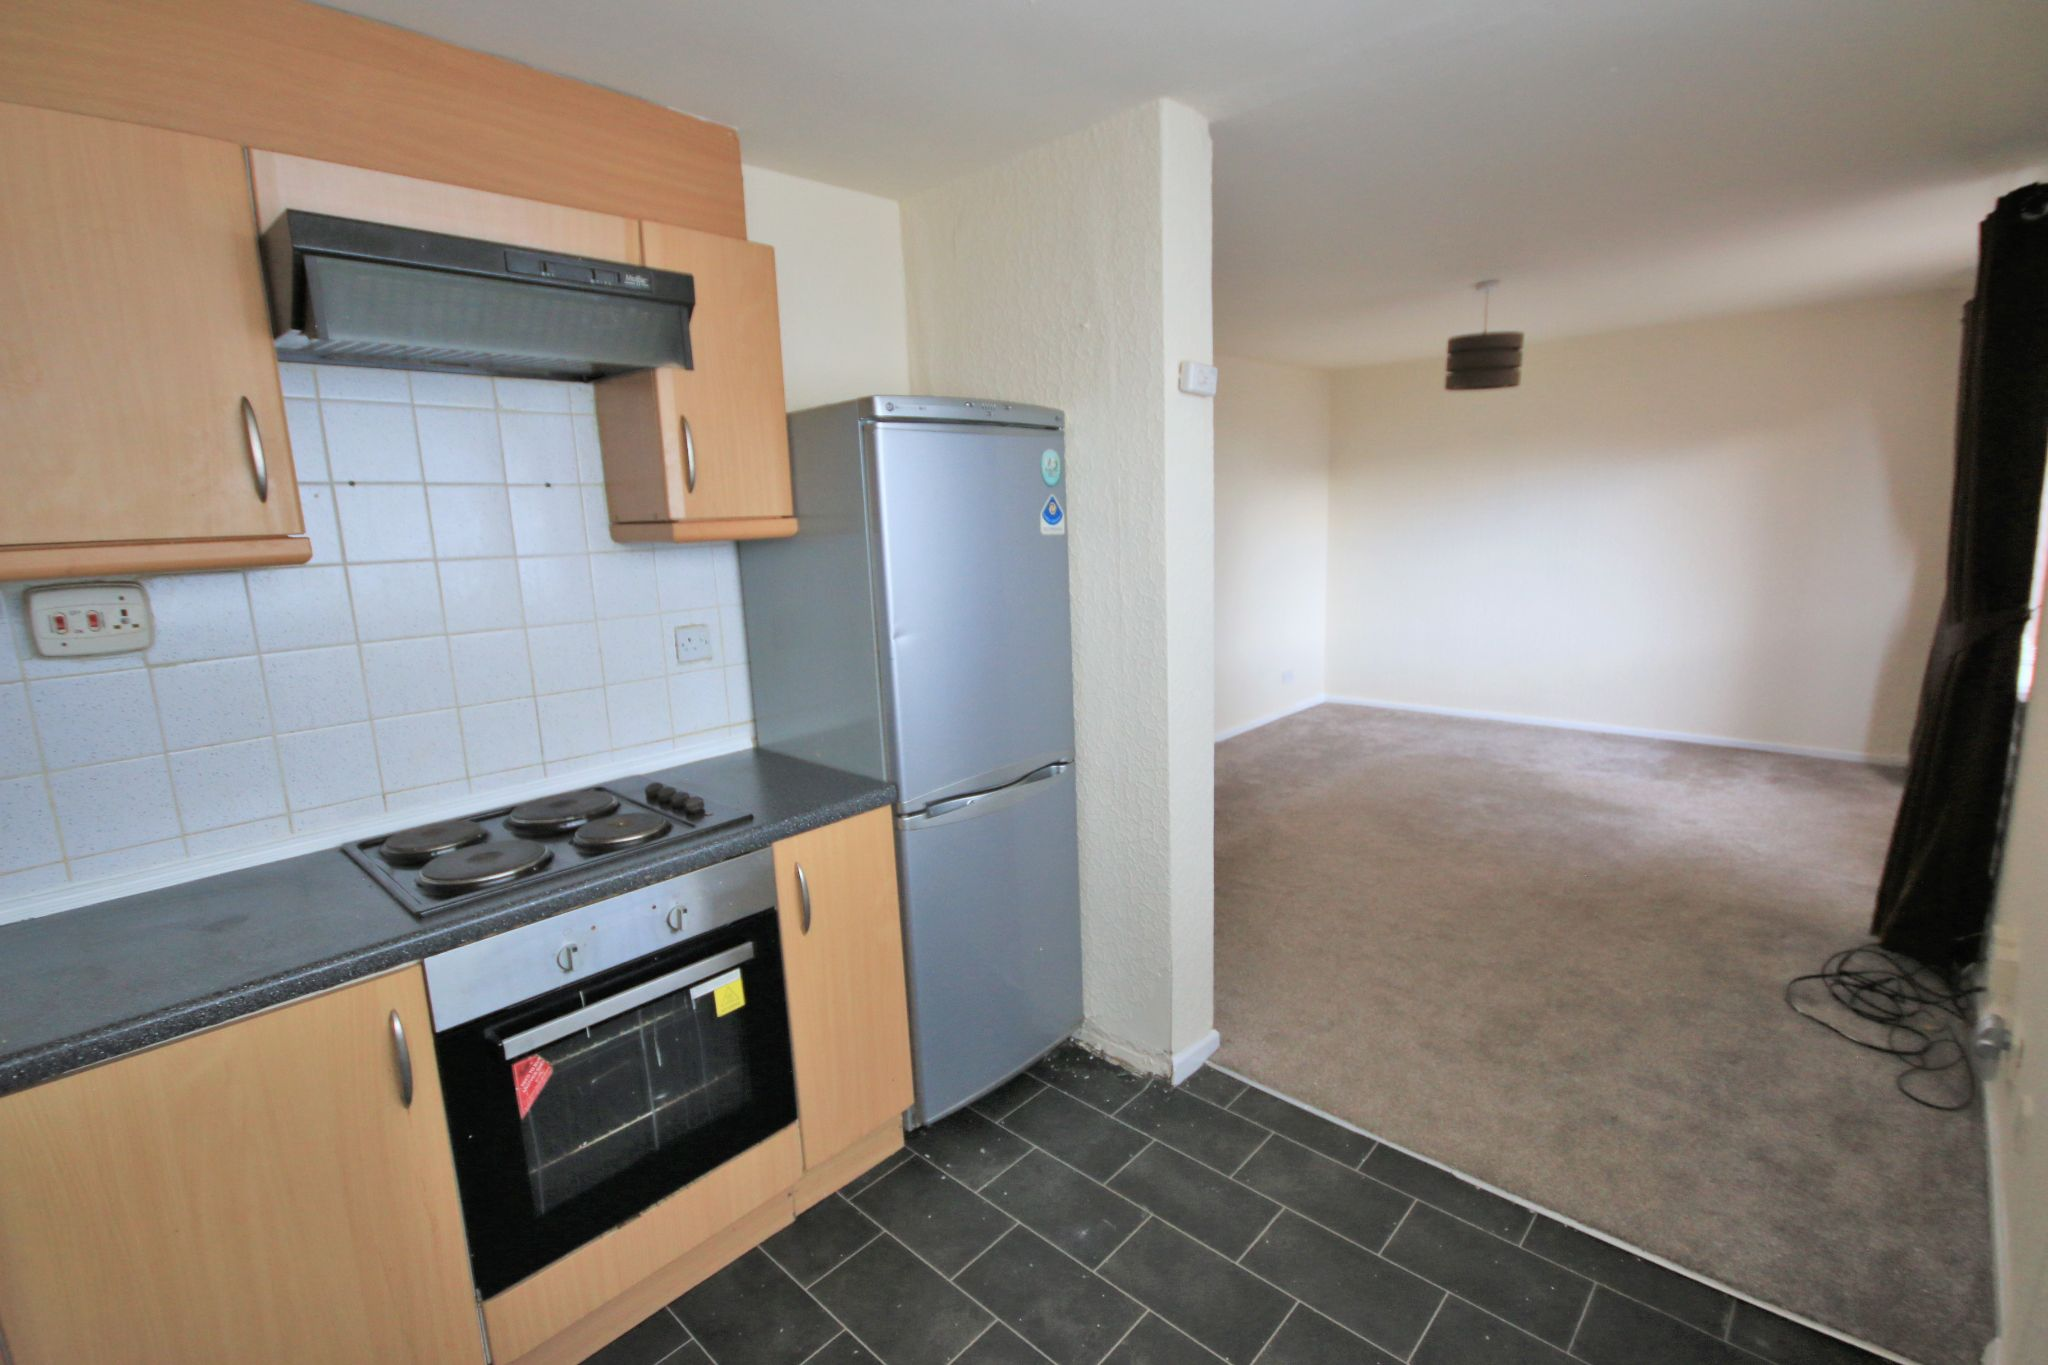 2 Bedroom Ground Floor Flat/apartment For Sale - Photograph 4